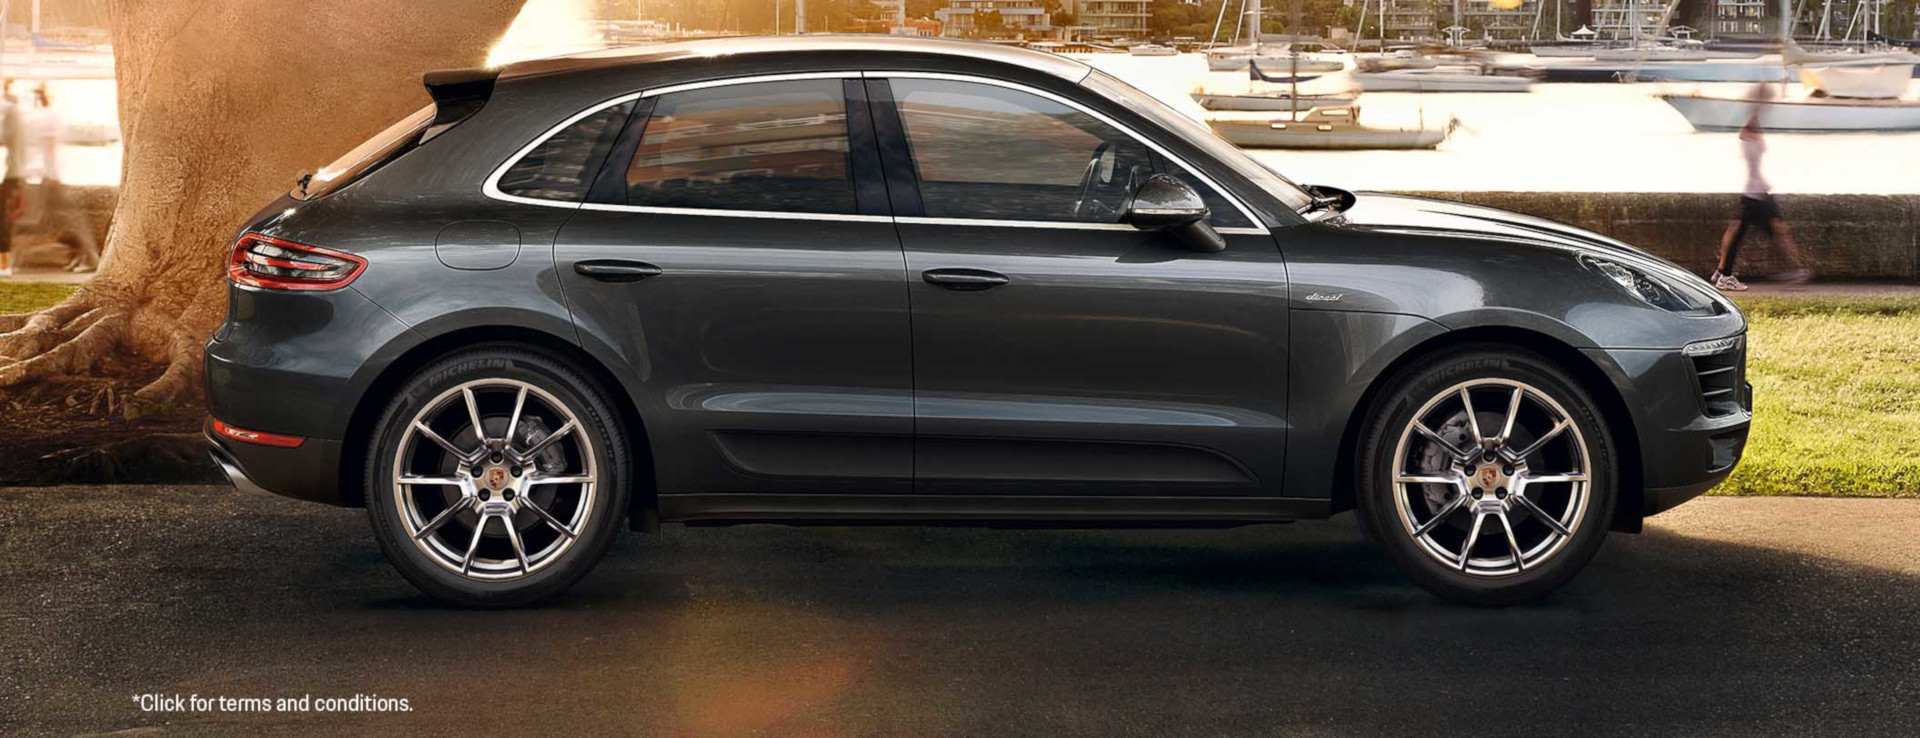 The Macan S Diesel. From $1,198 per month*.